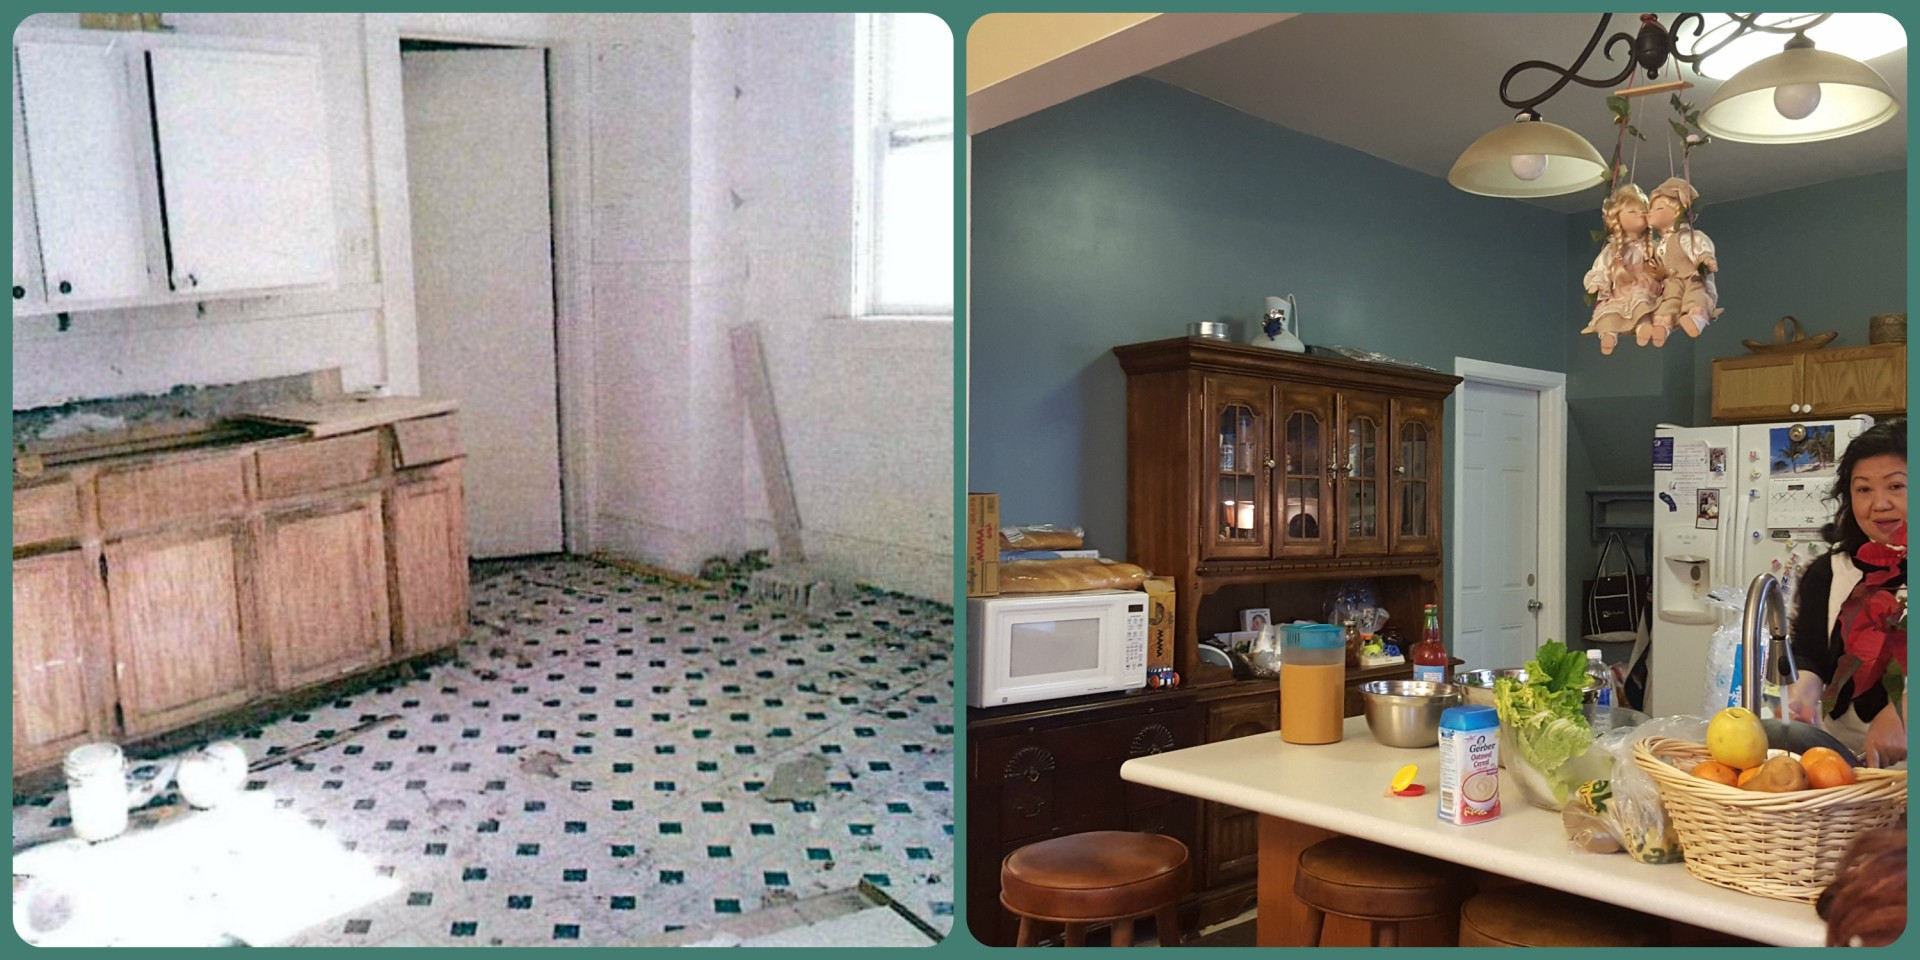 Lee Family's Kitchen: Before & After